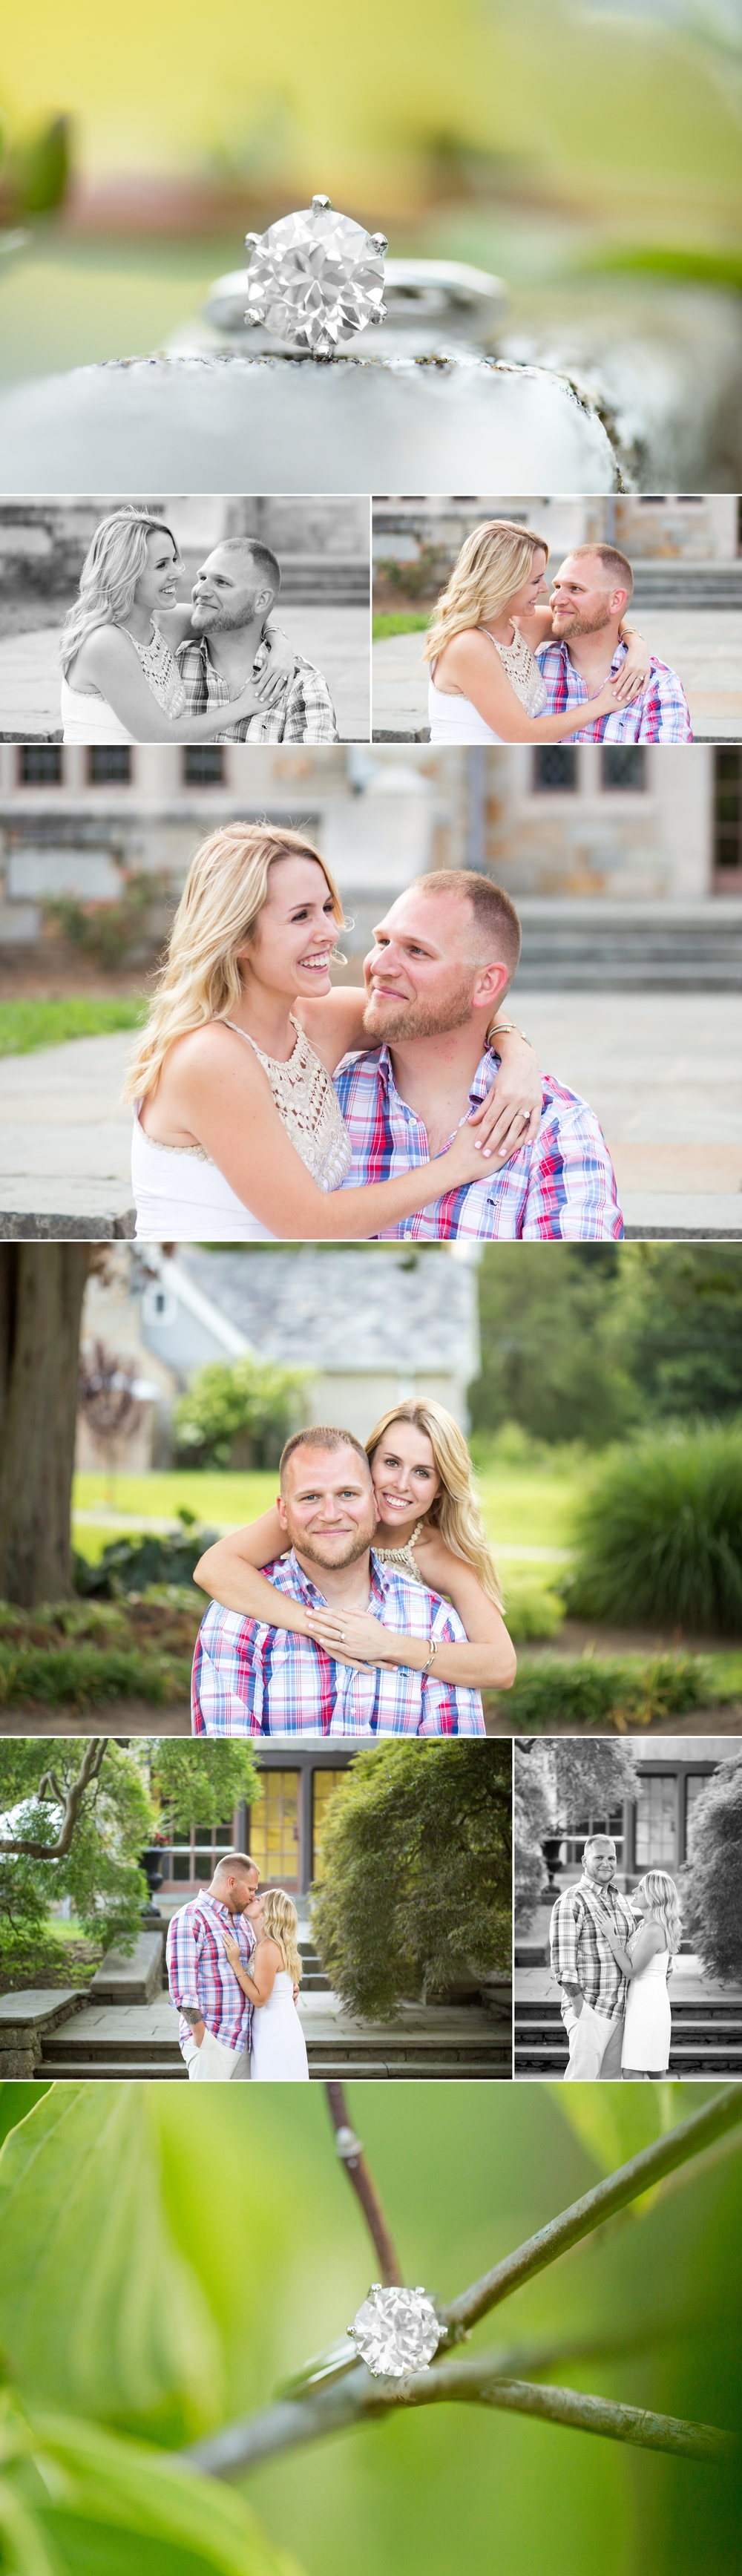 Melissa + Andy | Wedding Proposal | Shaina Lee Photography | CT, NYC + Destination Wedding + Engagement Photographer | Cranbury Park Gallaher Mansion Wedding Proposal | Connecticut Engagement